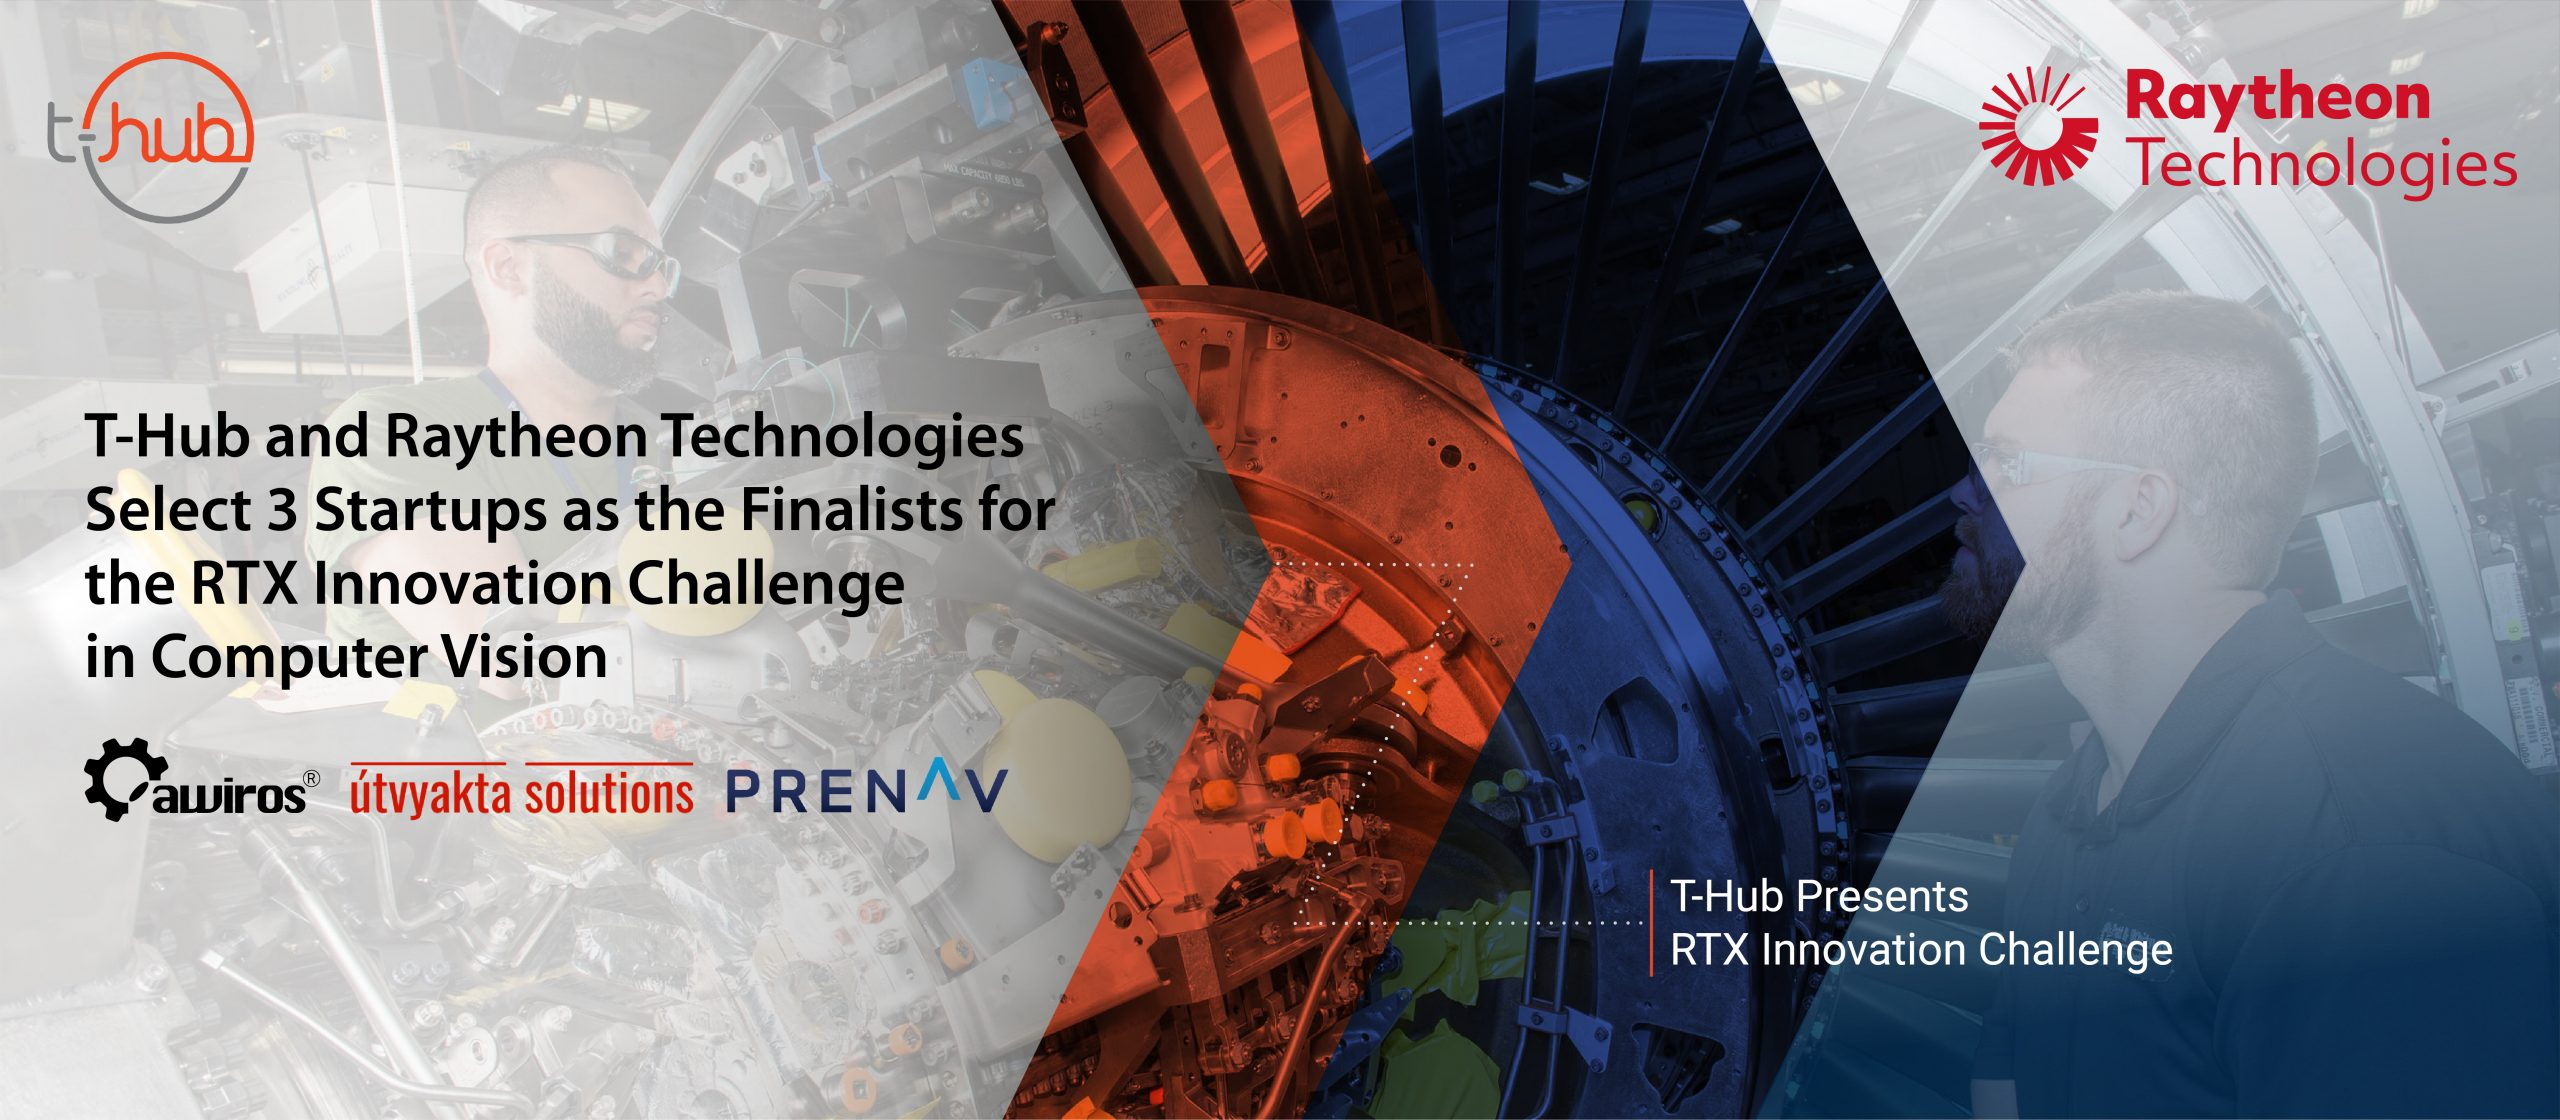 T-Hub and Raytheon Technologies Select 3 Startups as the Finalists for the RTX Innovation Challenge in Computer Vision